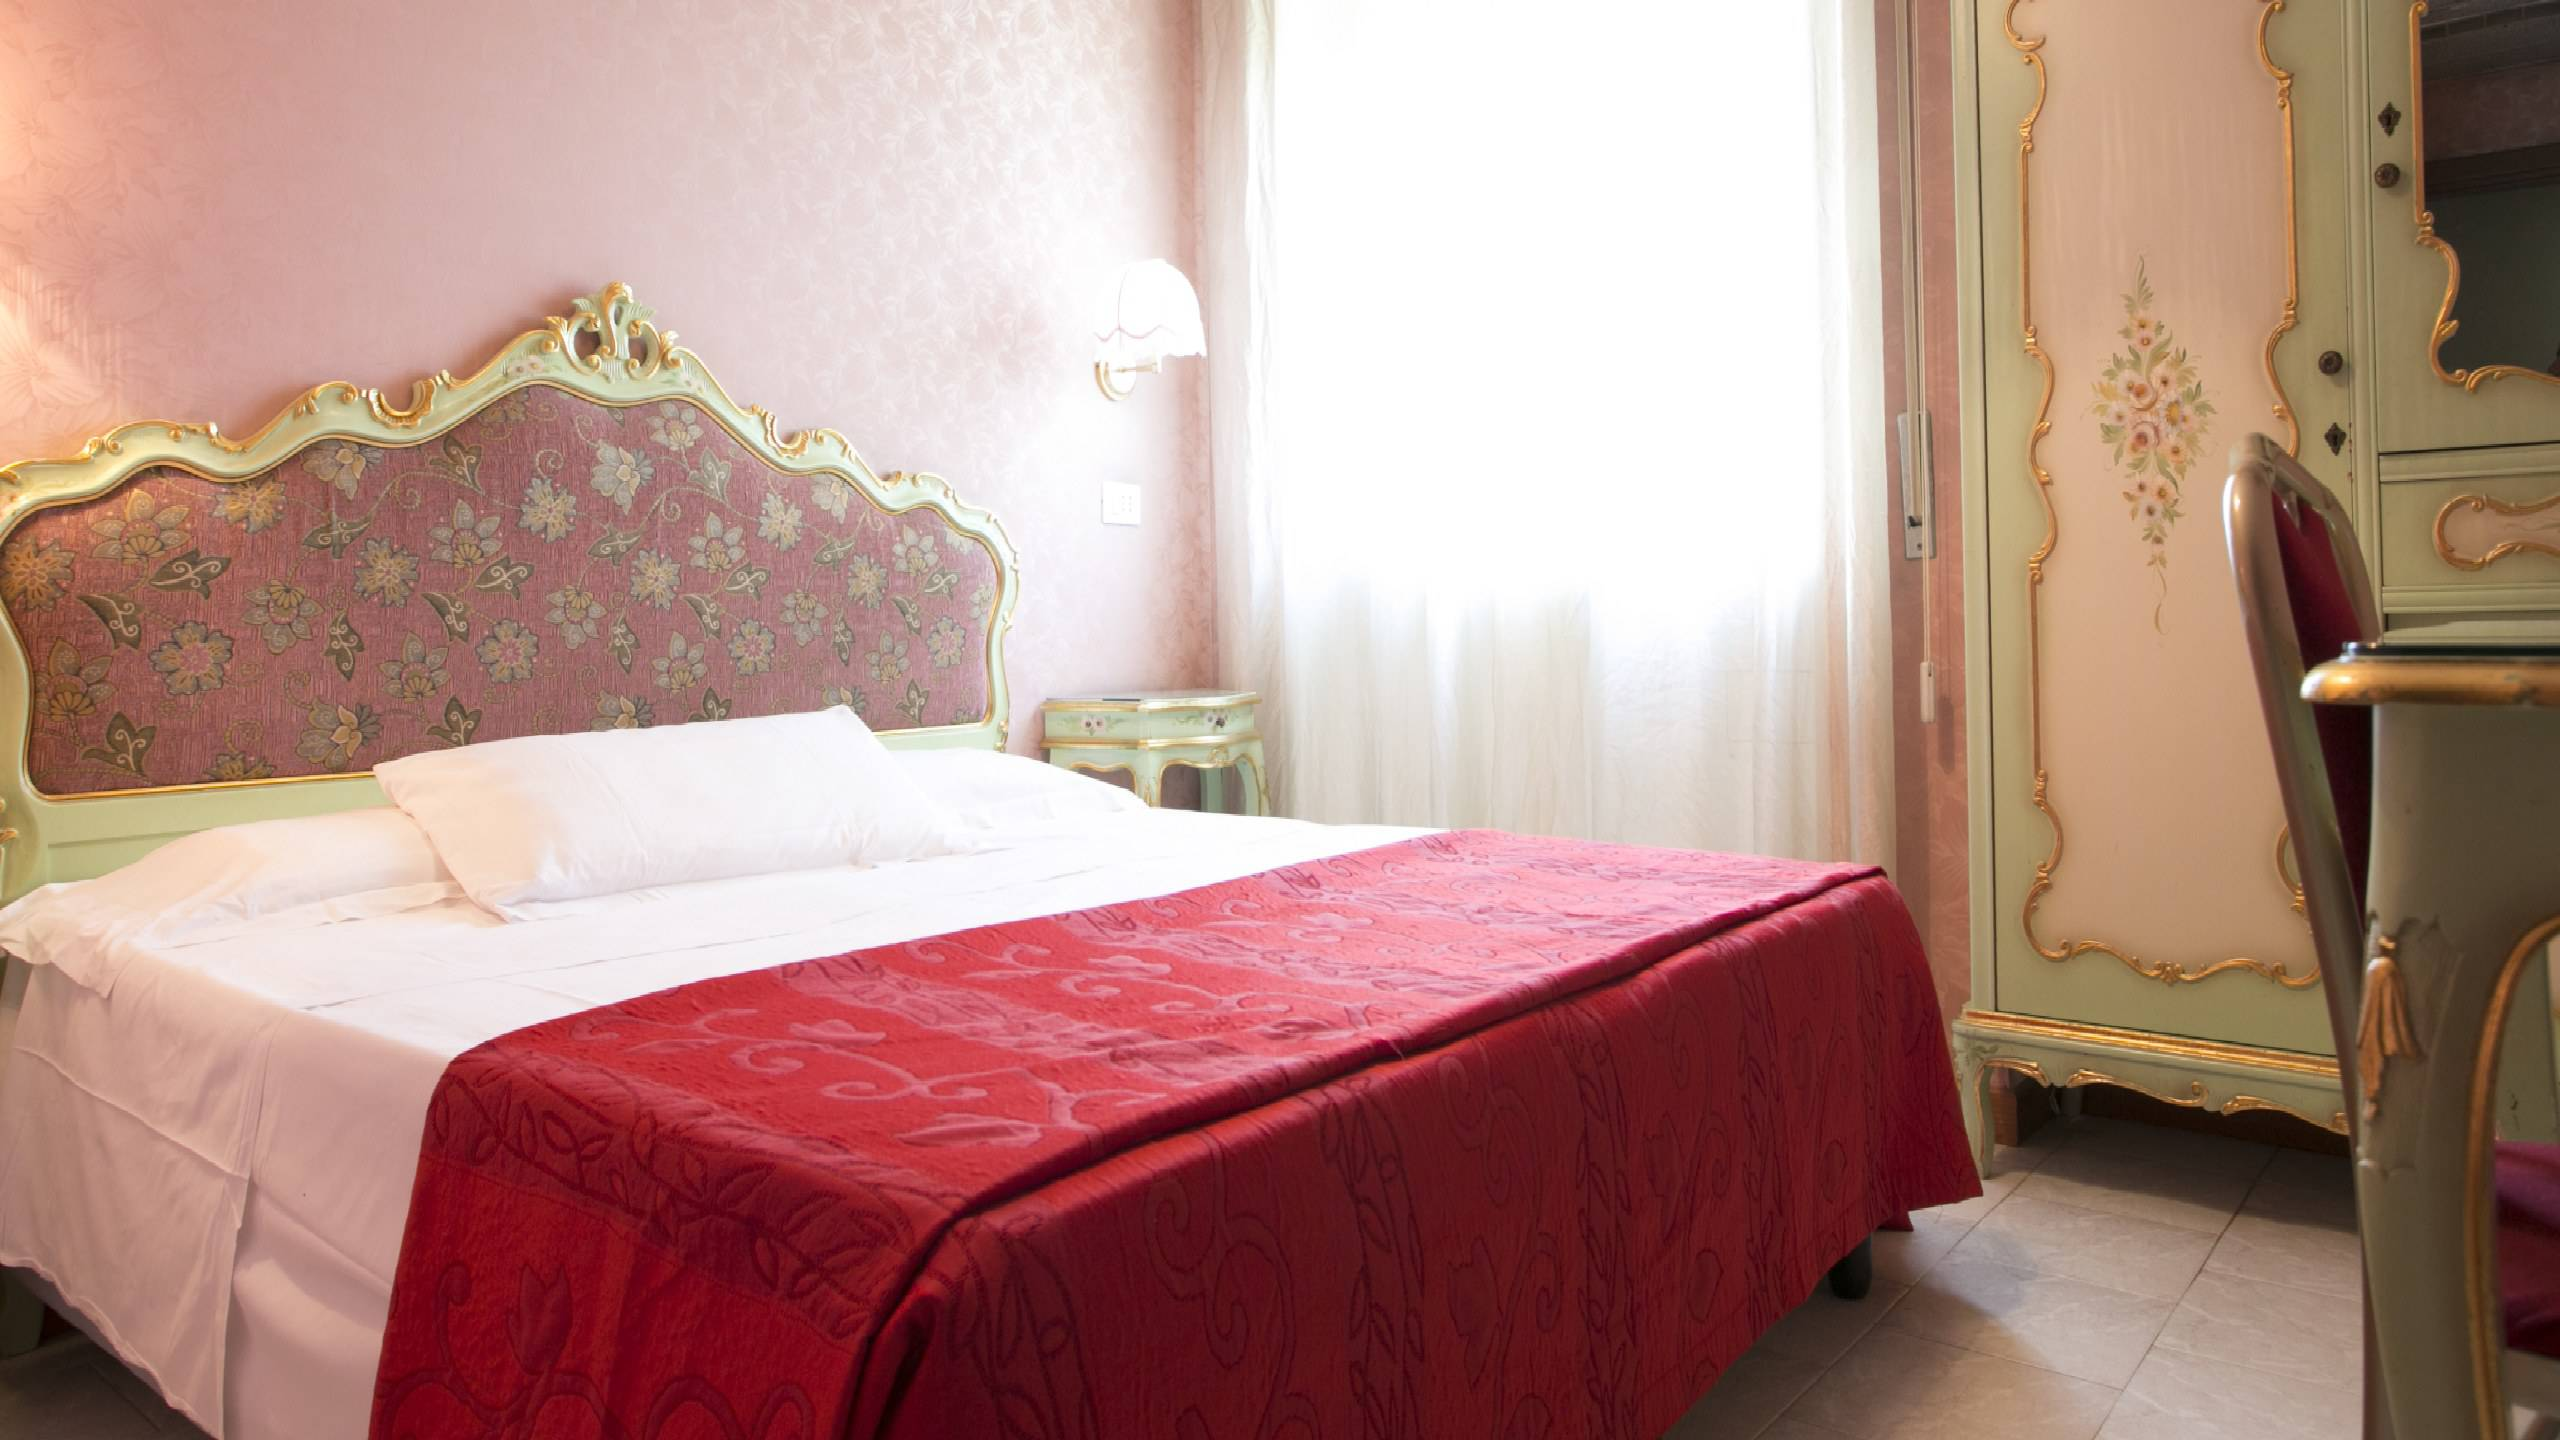 Hotel-Romulus-double-bed-7945-23